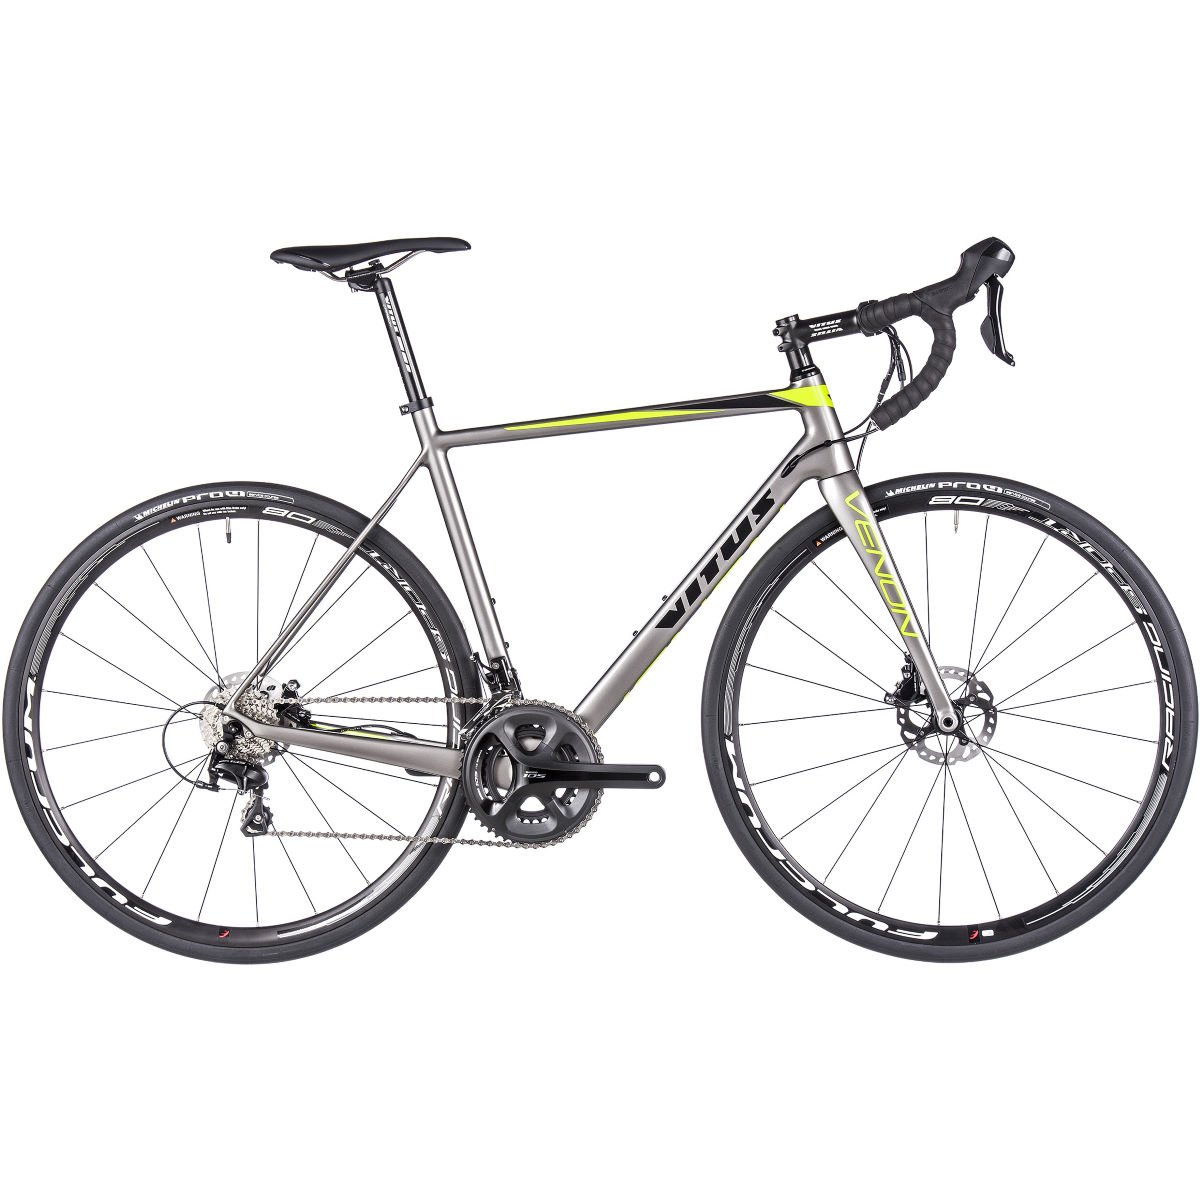 Vélo de route Vitus Venon Disc (105, 2017) - 50cm Stock Bike